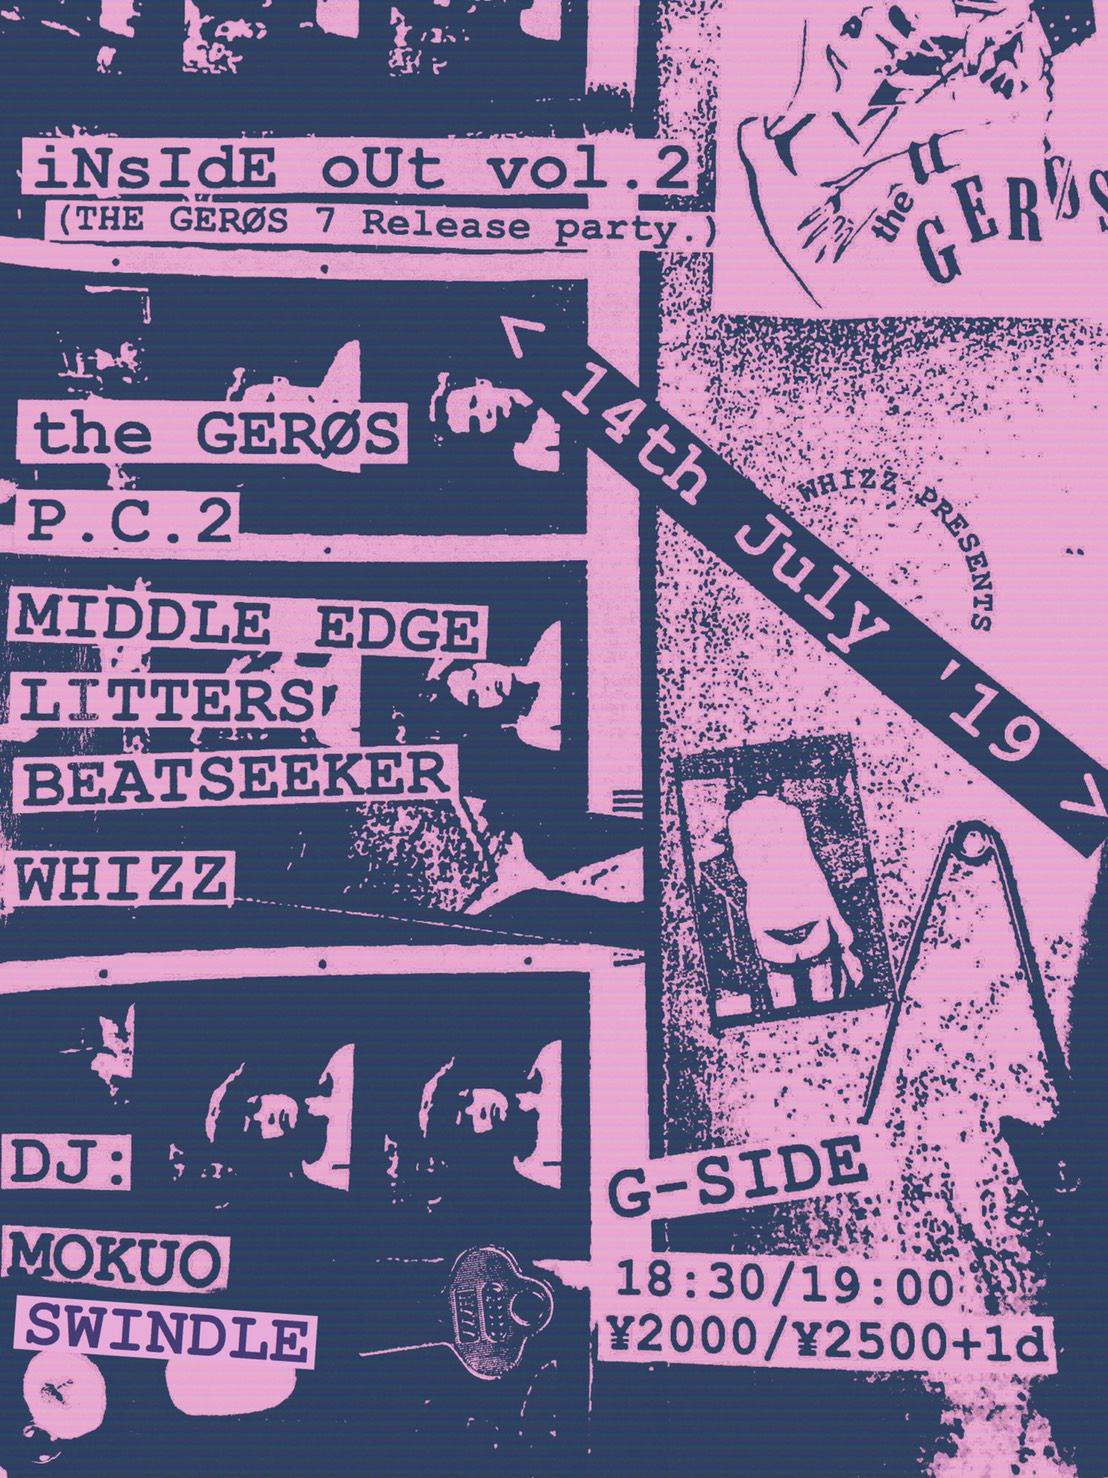 iNsIdE oUt vol.2 THE GERØS 7 Release party.